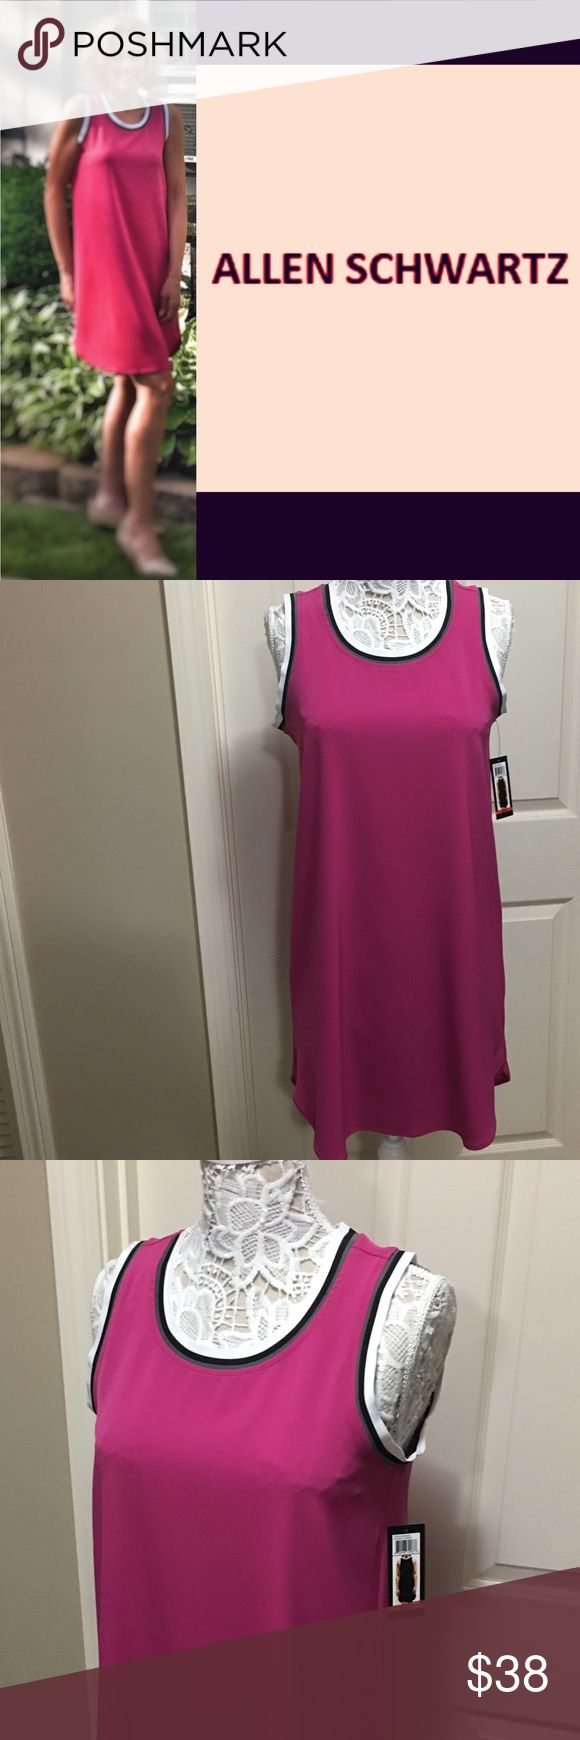 "SLEEVELESS SHIFT DRESS by ALLEN SCHWARTZ ABS This dress is SO perfect for Summer ☀️ So easy and functional. Pull over, sleeveless, flowing, longer in the back, just wonderful! 34""L in front 37""L in back. NWT Smoke free home. Bundle & save! ABS Allen Schwartz Dresses High Low"